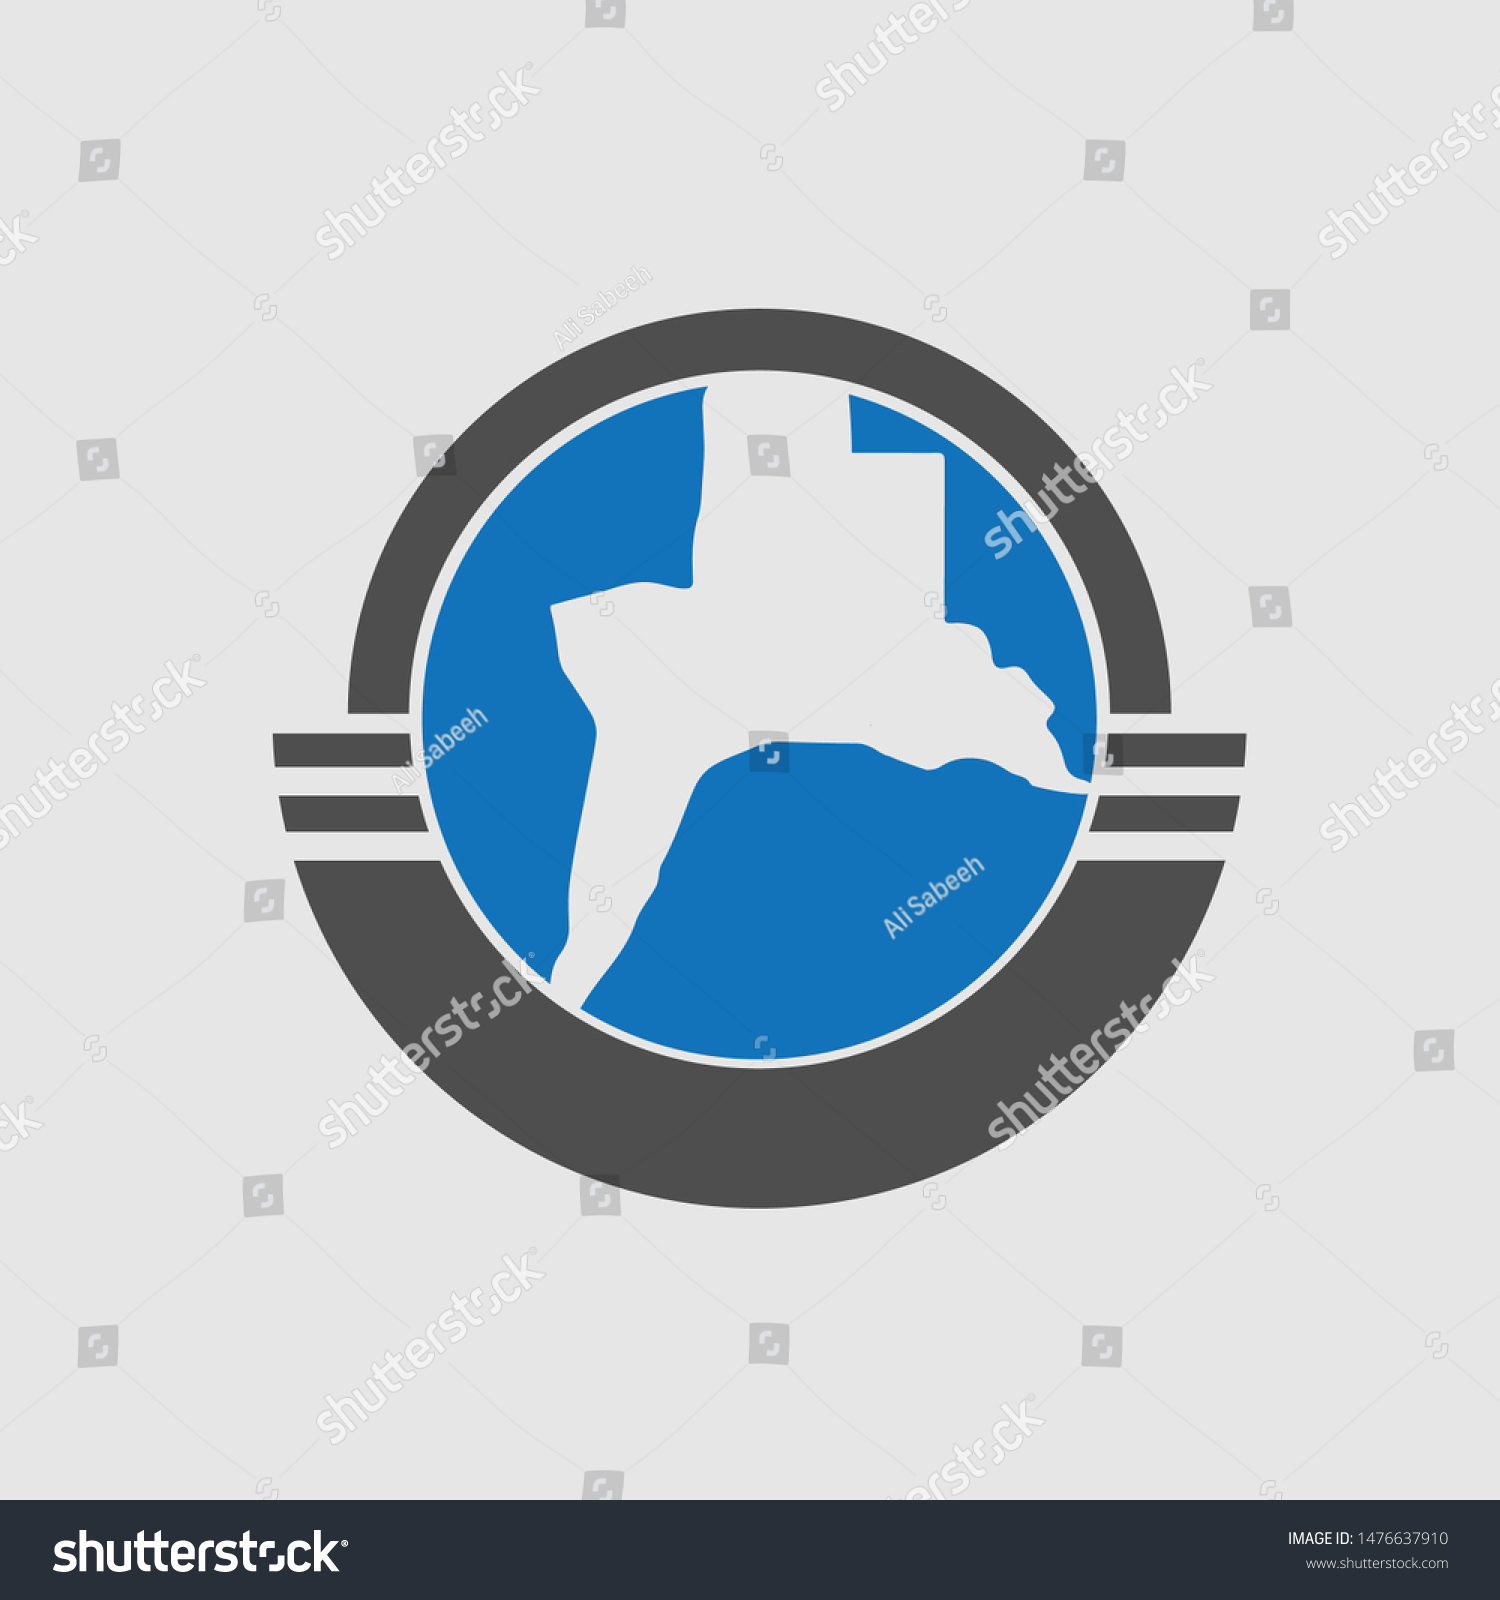 stock-vector-iraq-basra-map-logo-1476637